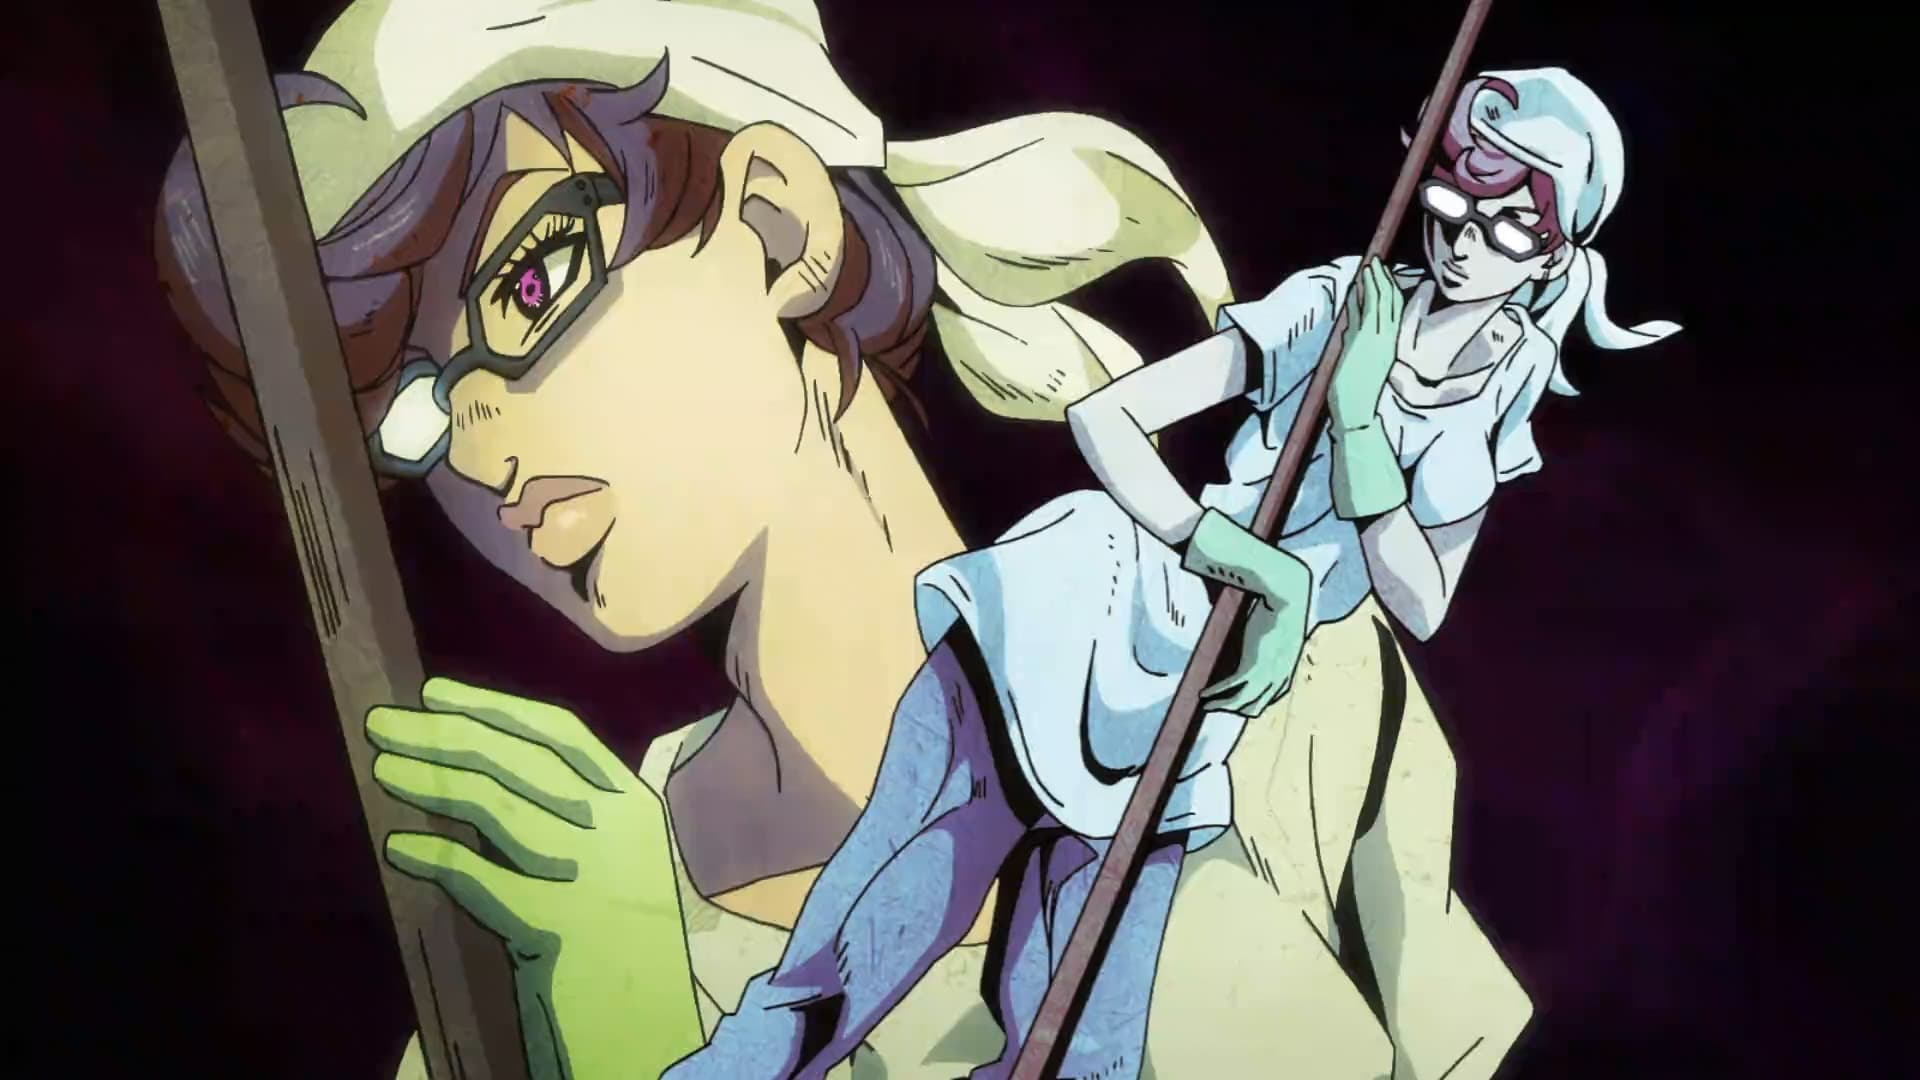 JoJo's Bizarre Adventure Season 4 :Episode 9  The First Mission From the Boss